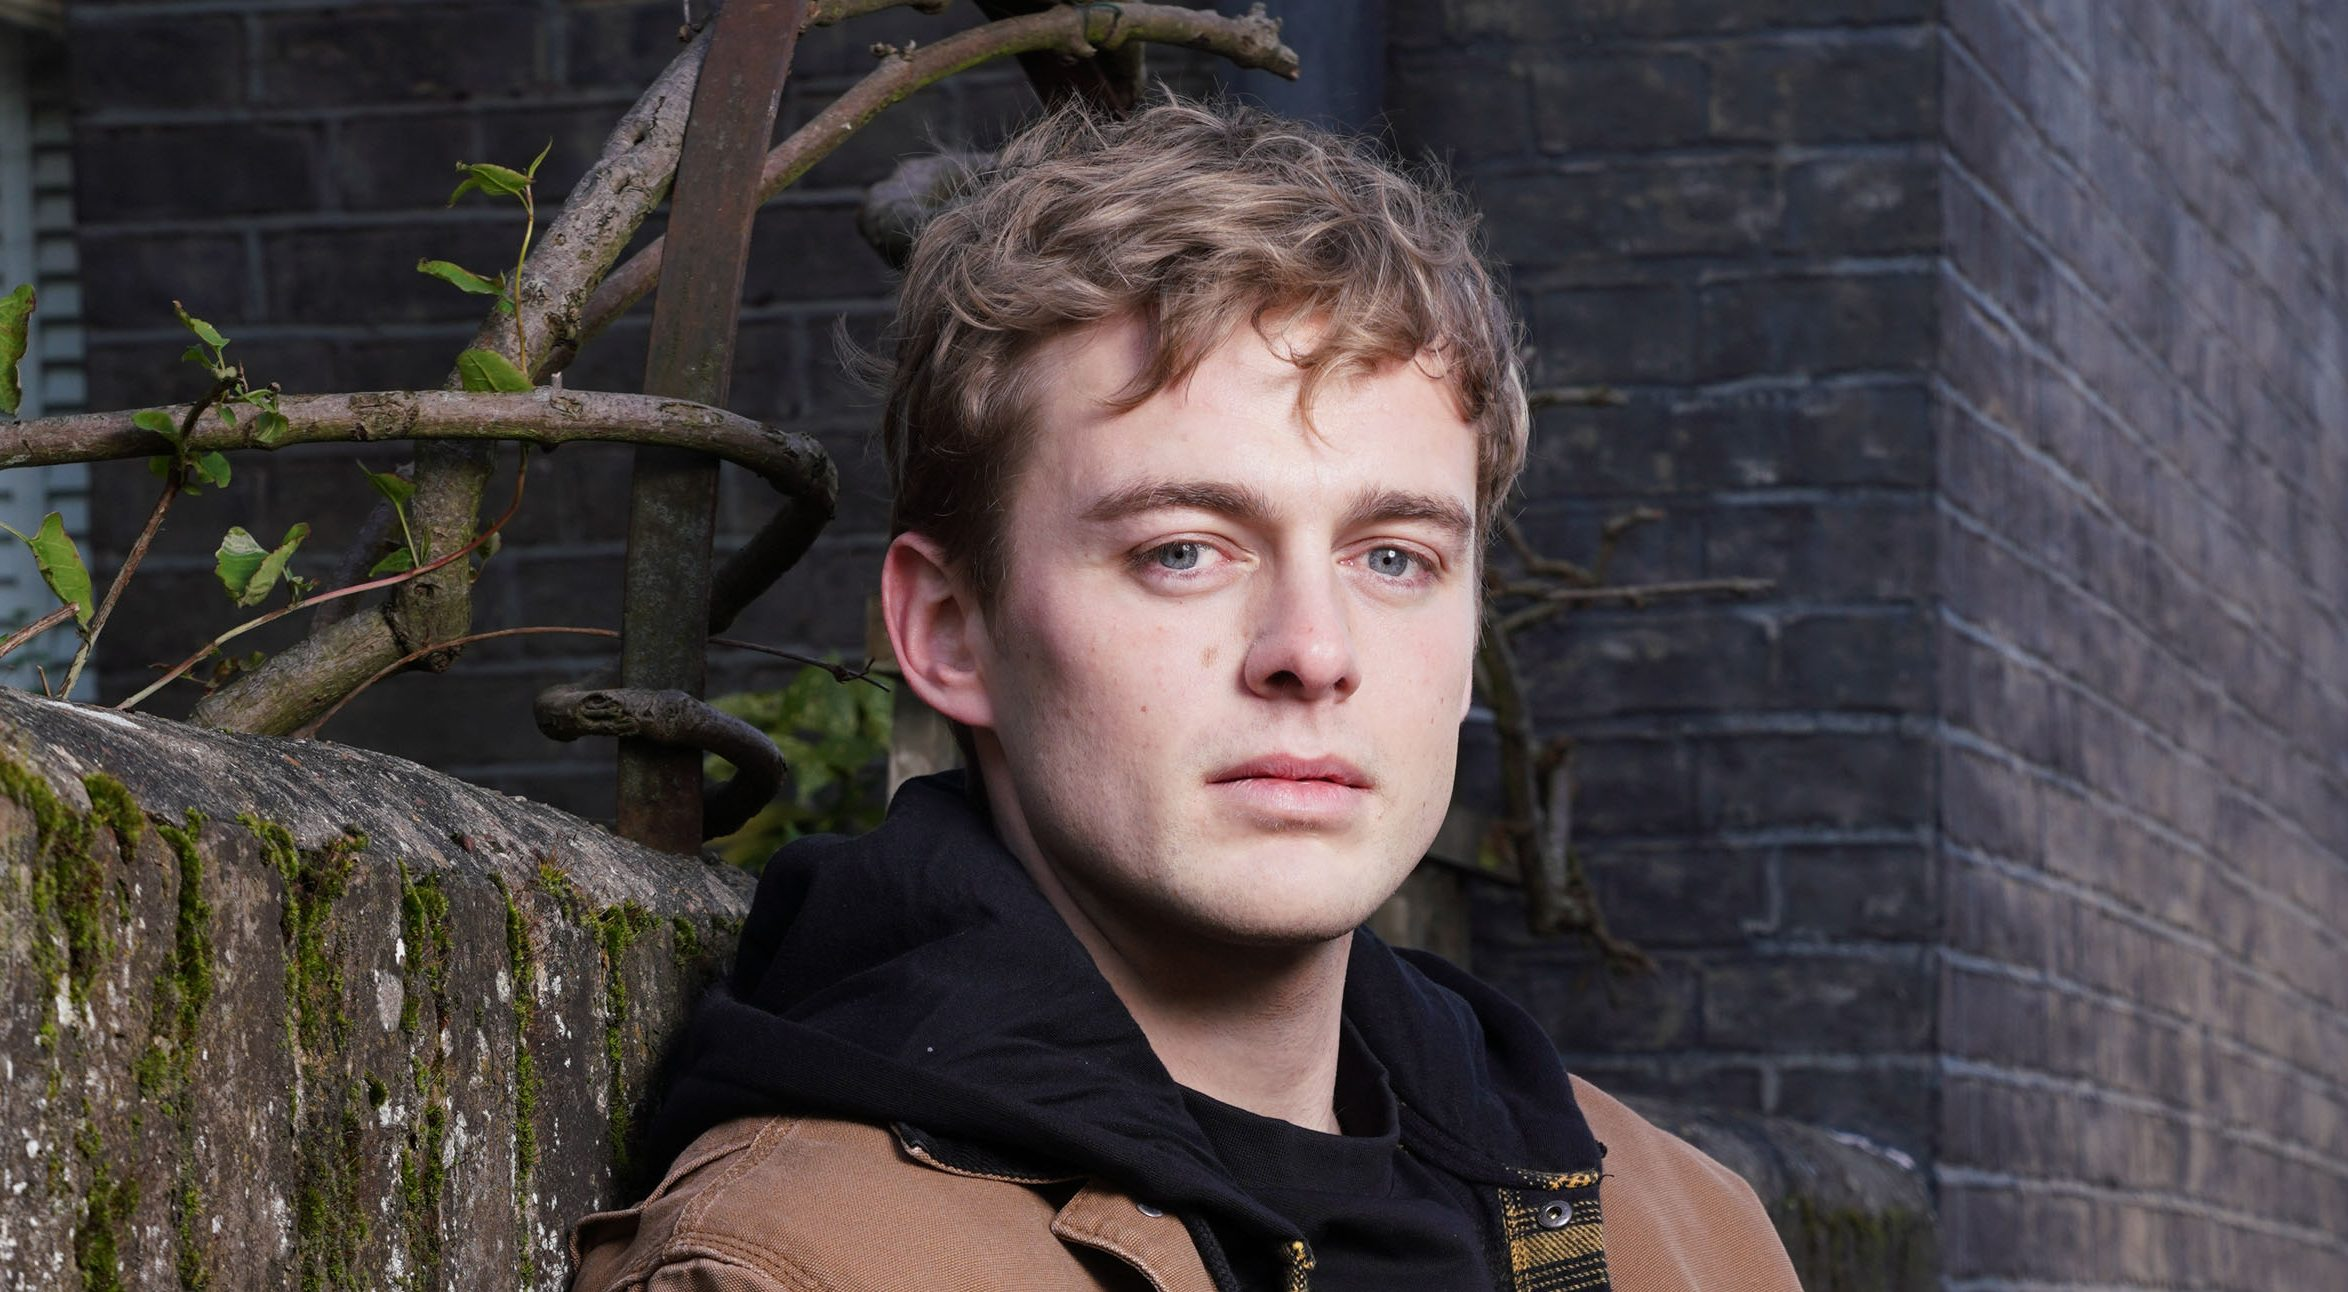 EastEnders boss promises major storyline for 'new' Peter Beale